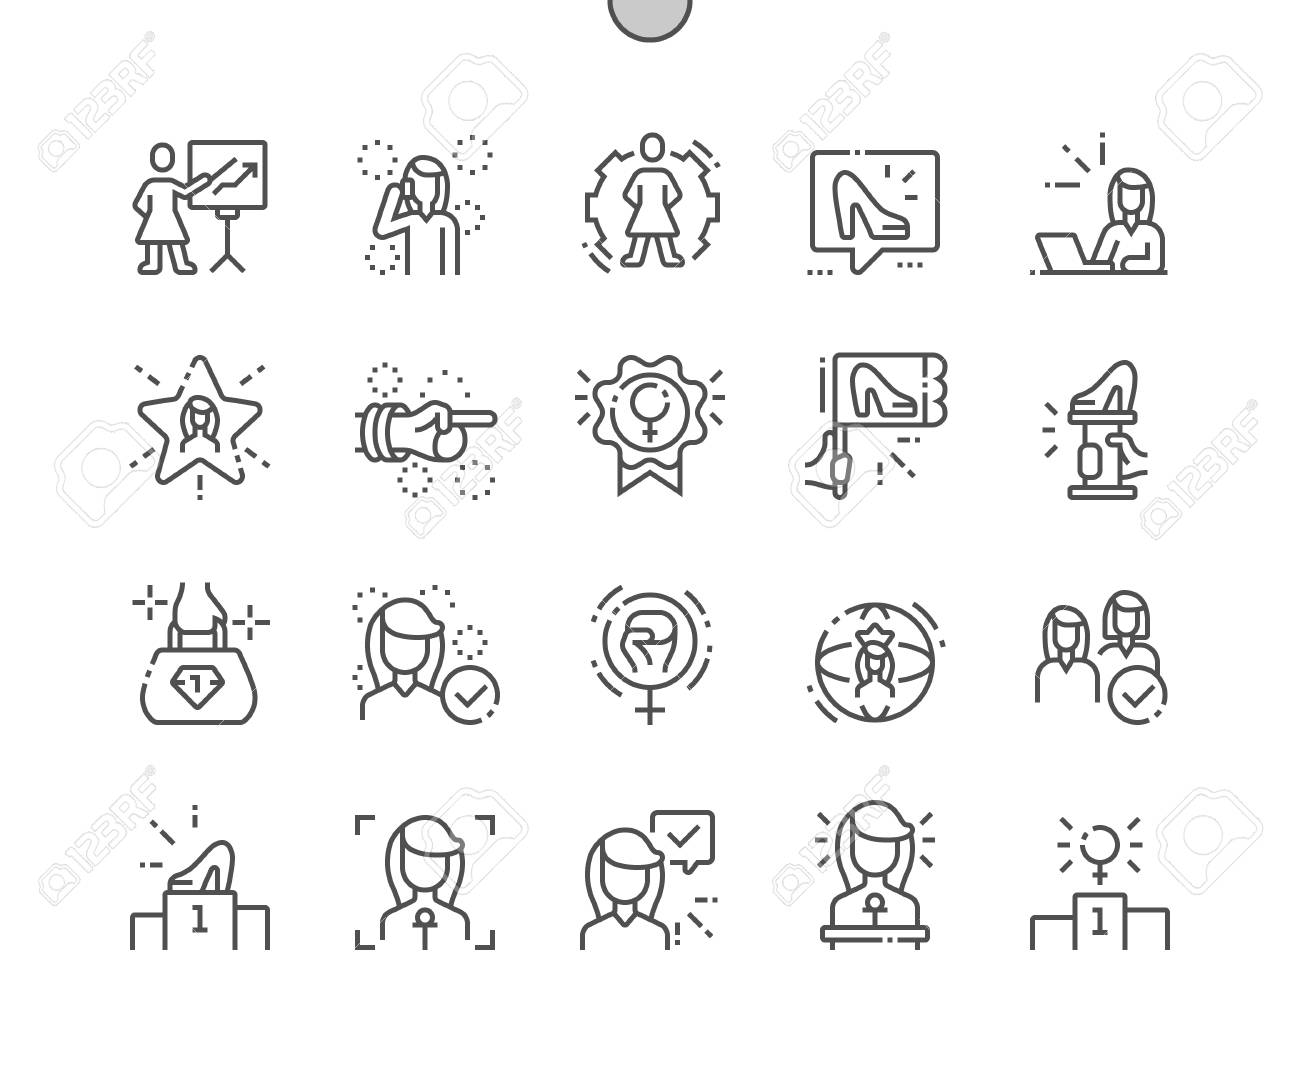 Female Leaders Well-crafted Pixel Perfect Vector Thin Line Icons 30 2x Grid for Web Graphics and Apps. Simple Minimal Pictogram - 127729747